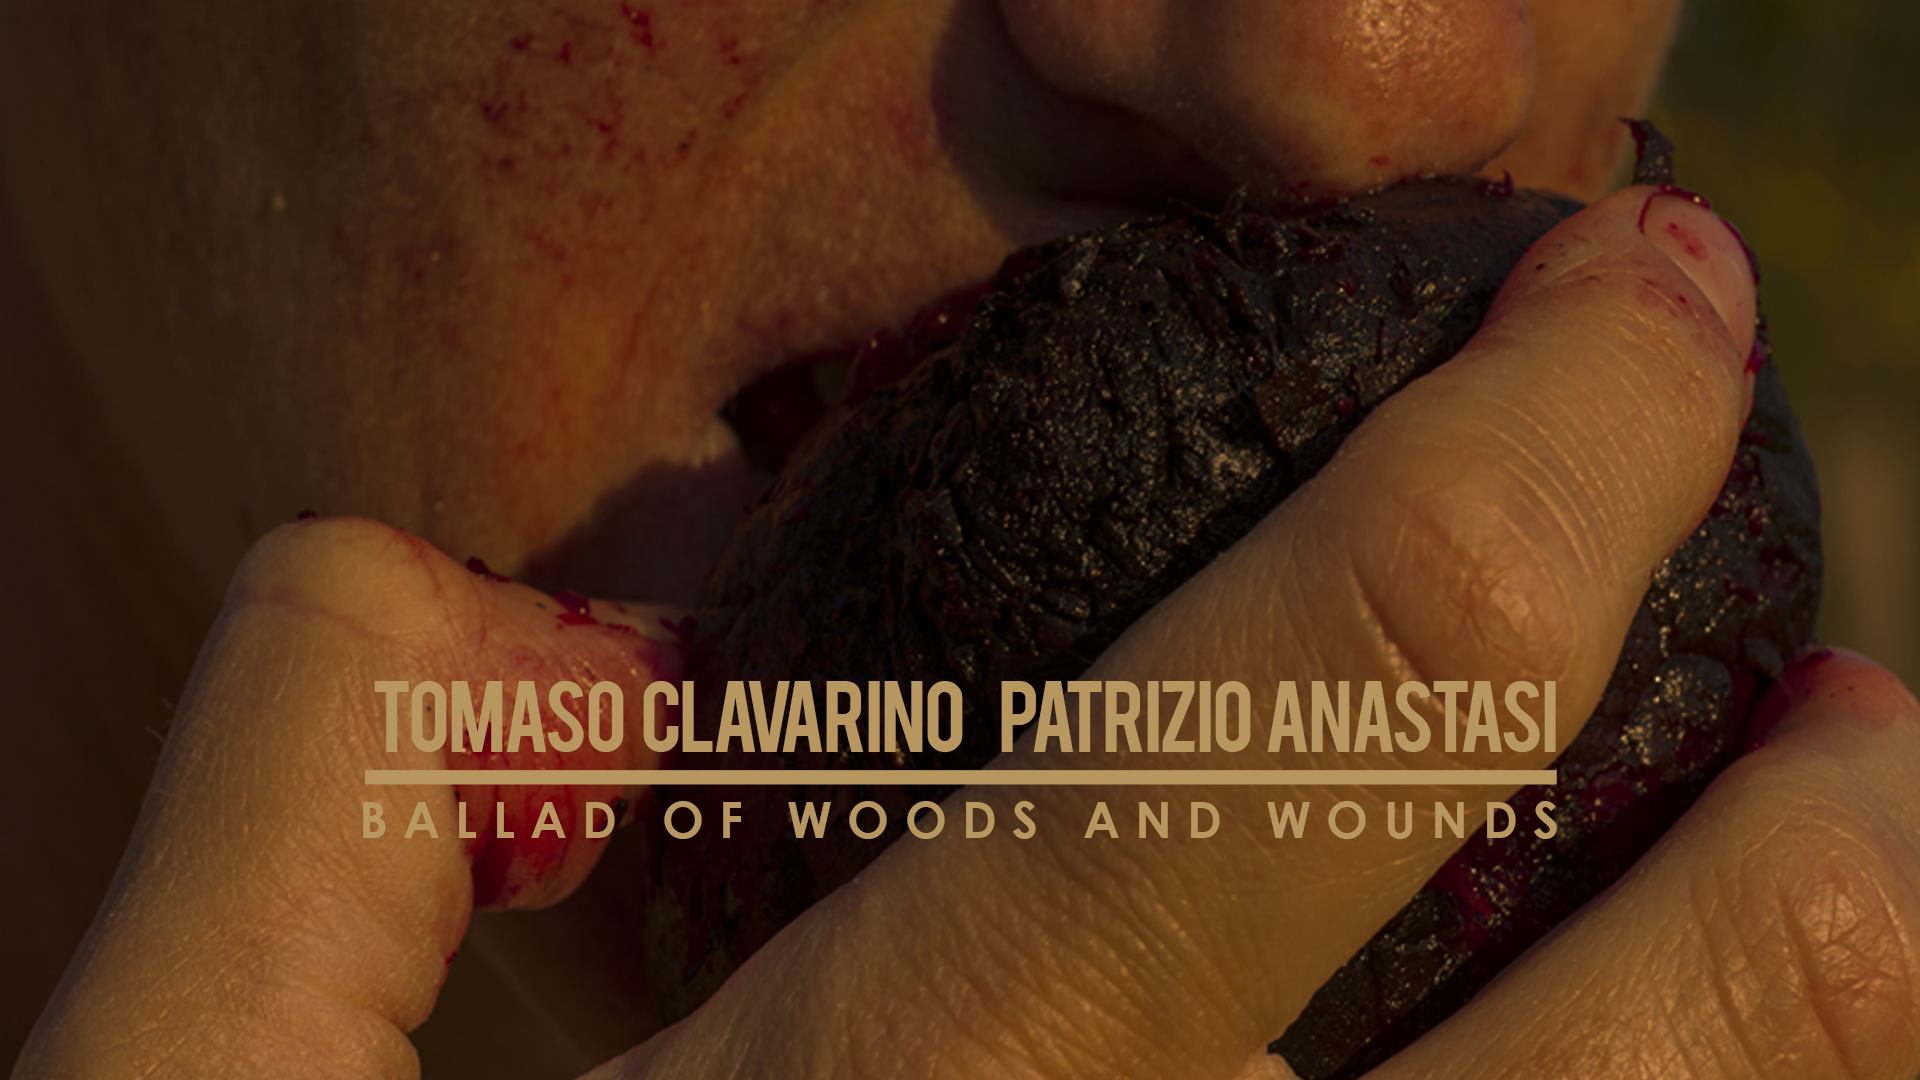 Tomaso Clavarino, Patrizio Anastasi - Ballad of woods and wounds